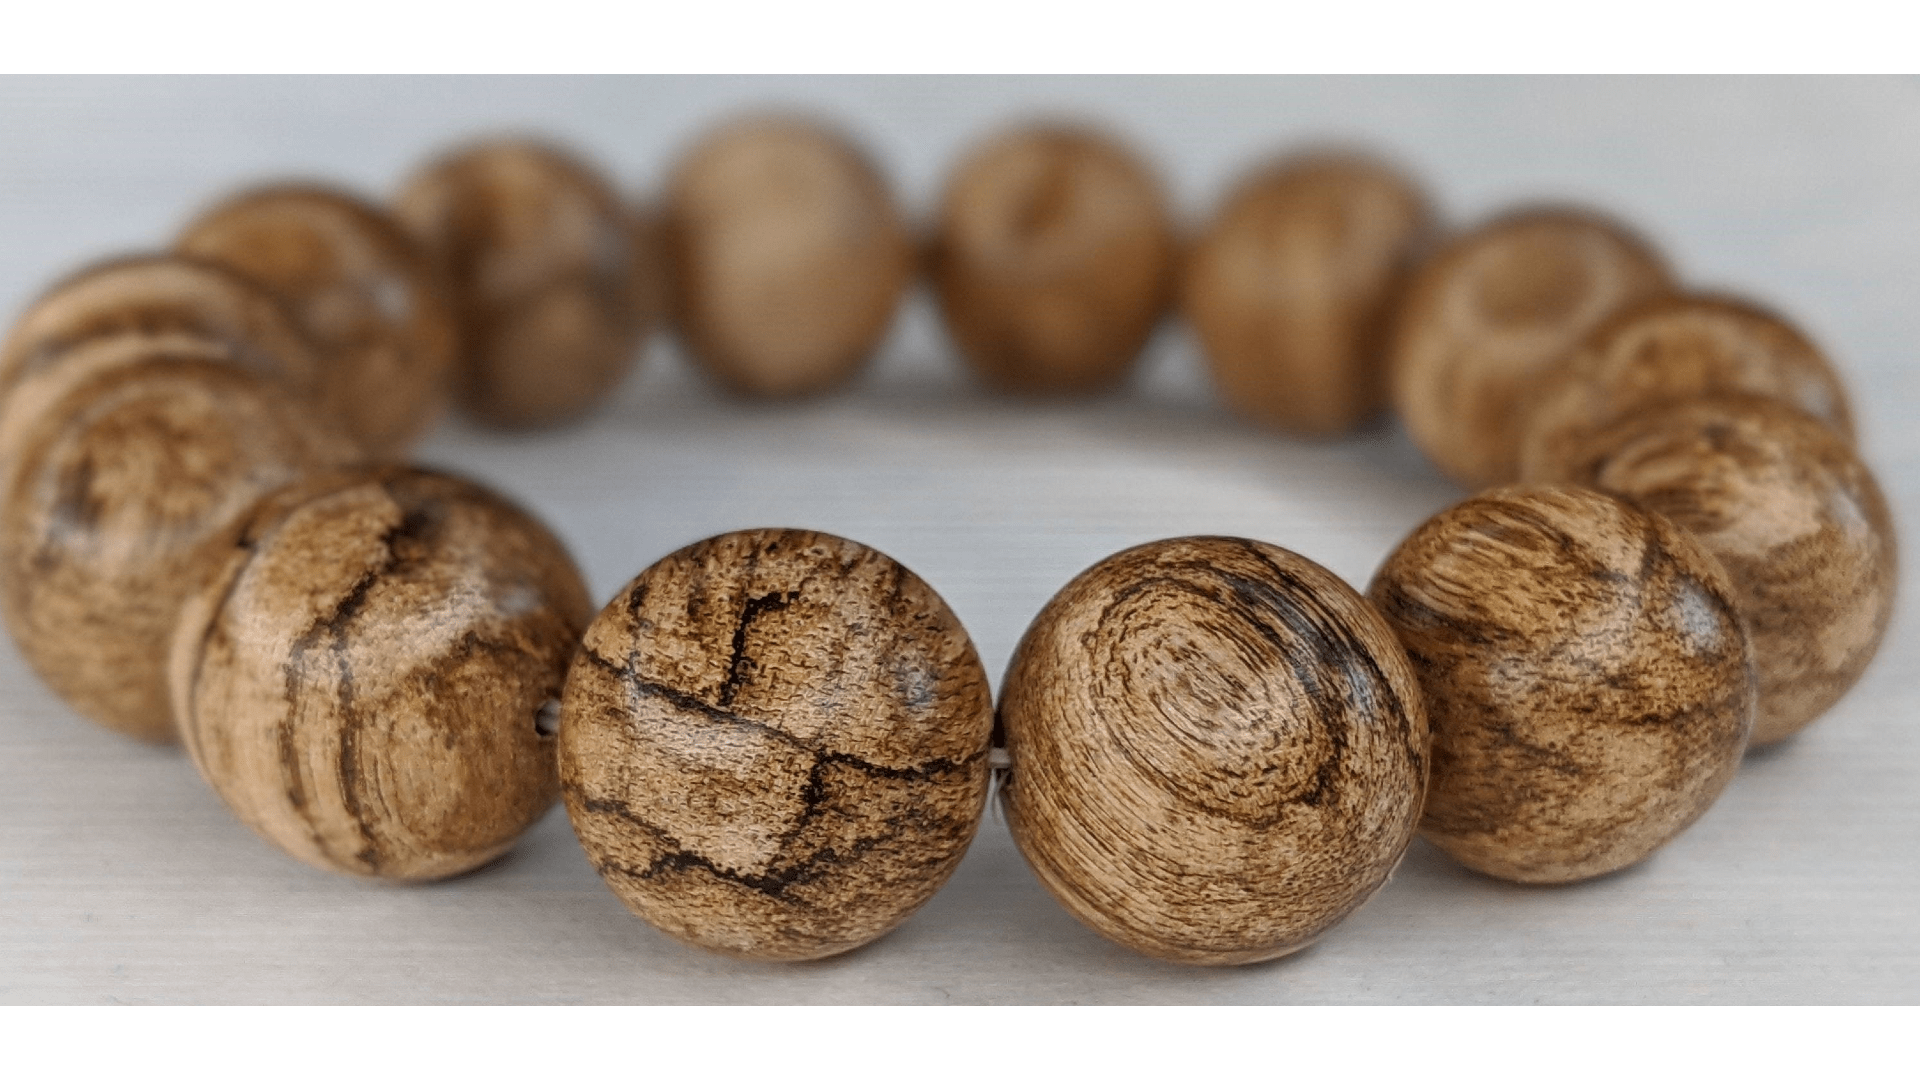 Beads *New* The Tiger King - Wild Agarwood Bracelet 20g 16mm from Malinau